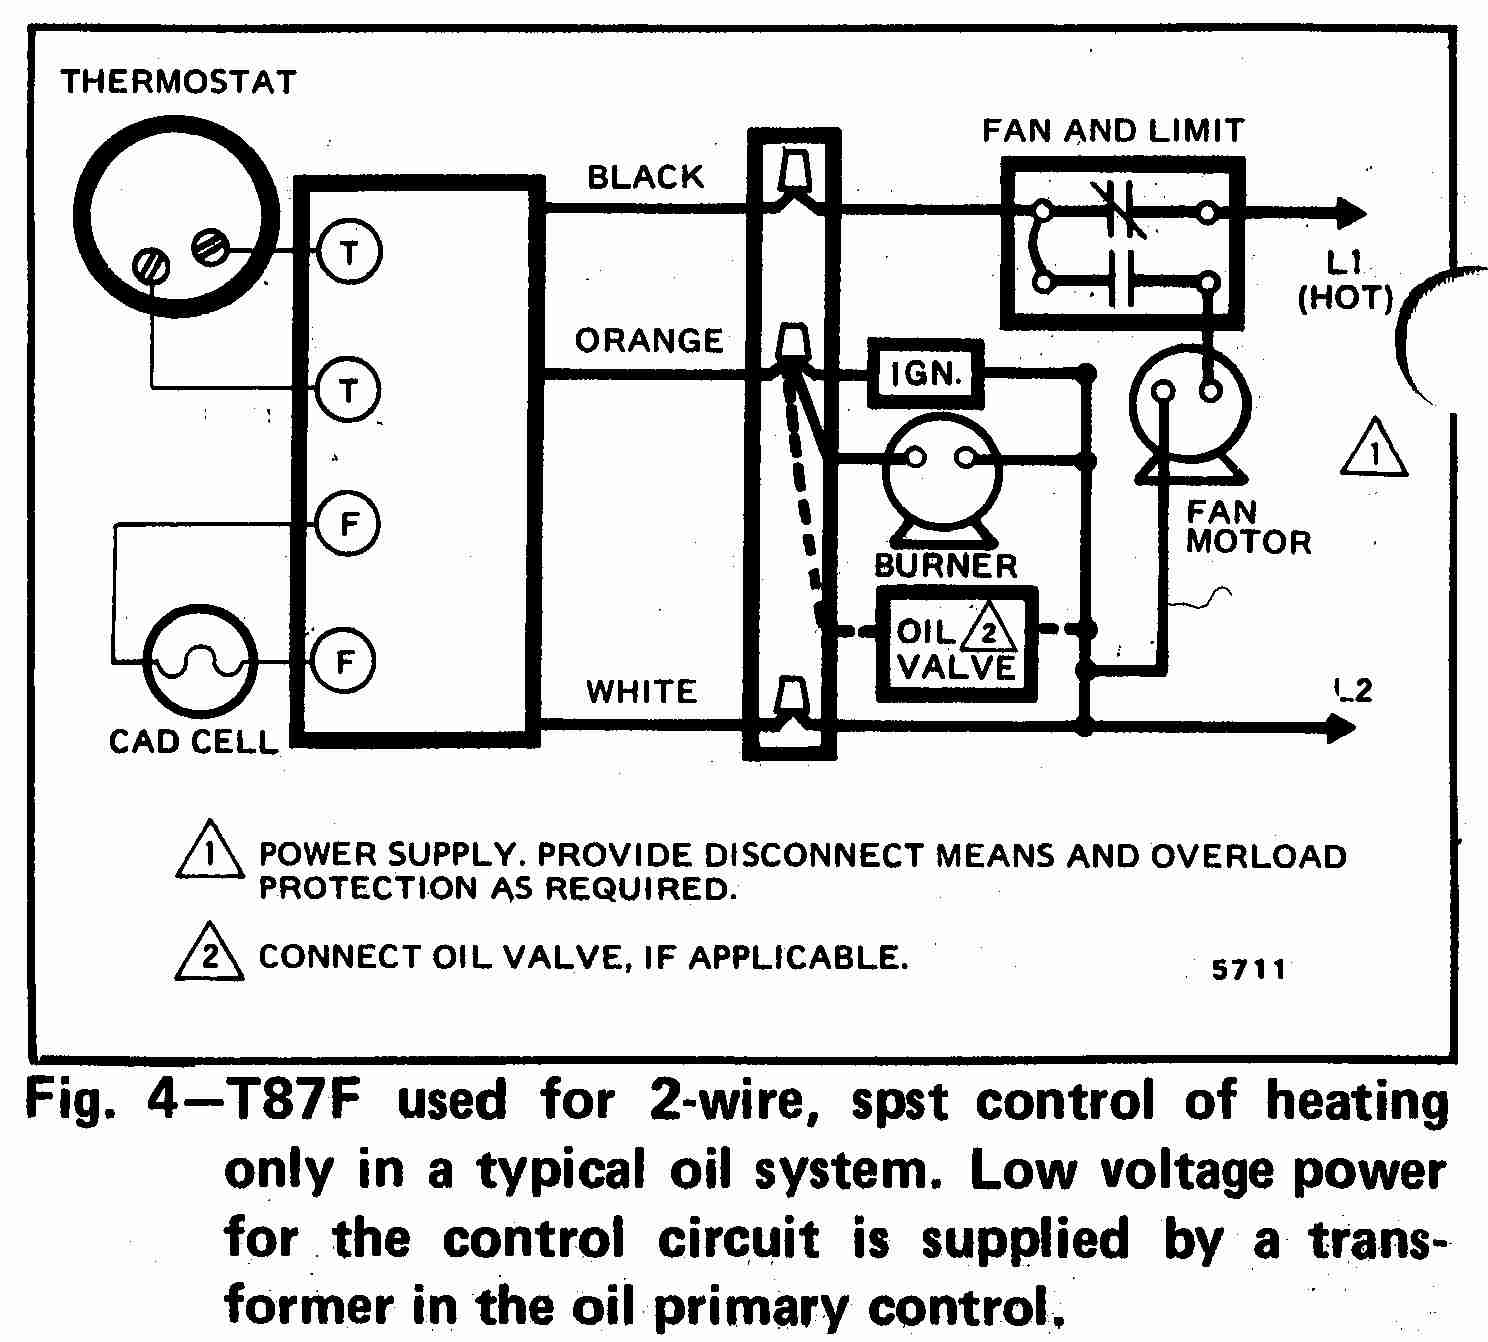 TT_T87F_0002_2W_DJF room thermostat wiring diagrams for hvac systems gas heater wiring diagram at bayanpartner.co